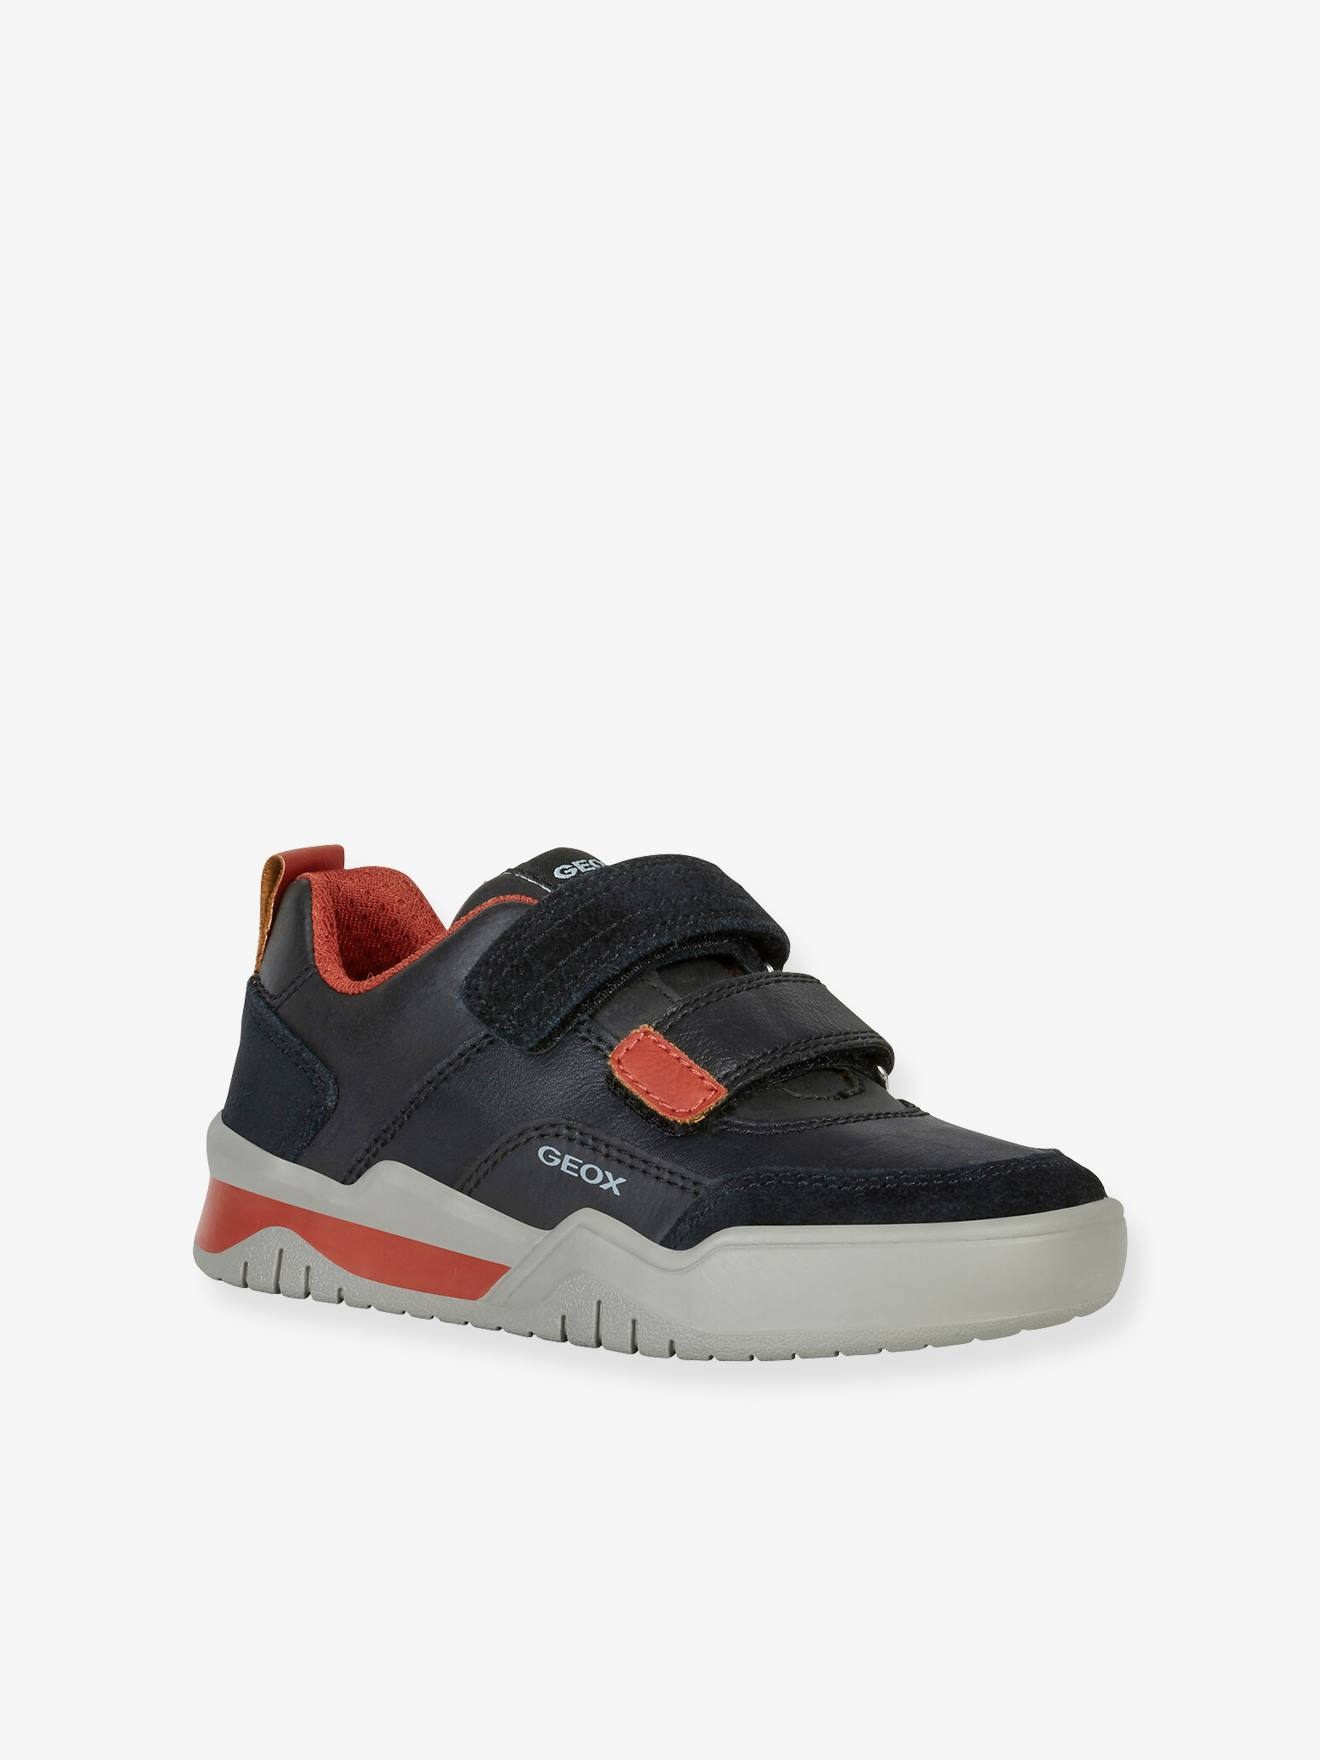 Volverse club Retocar  J Perth Boy C Trainers for Boys, by GEOX® - black dark solid with design,  Shoes | Vertbaudet